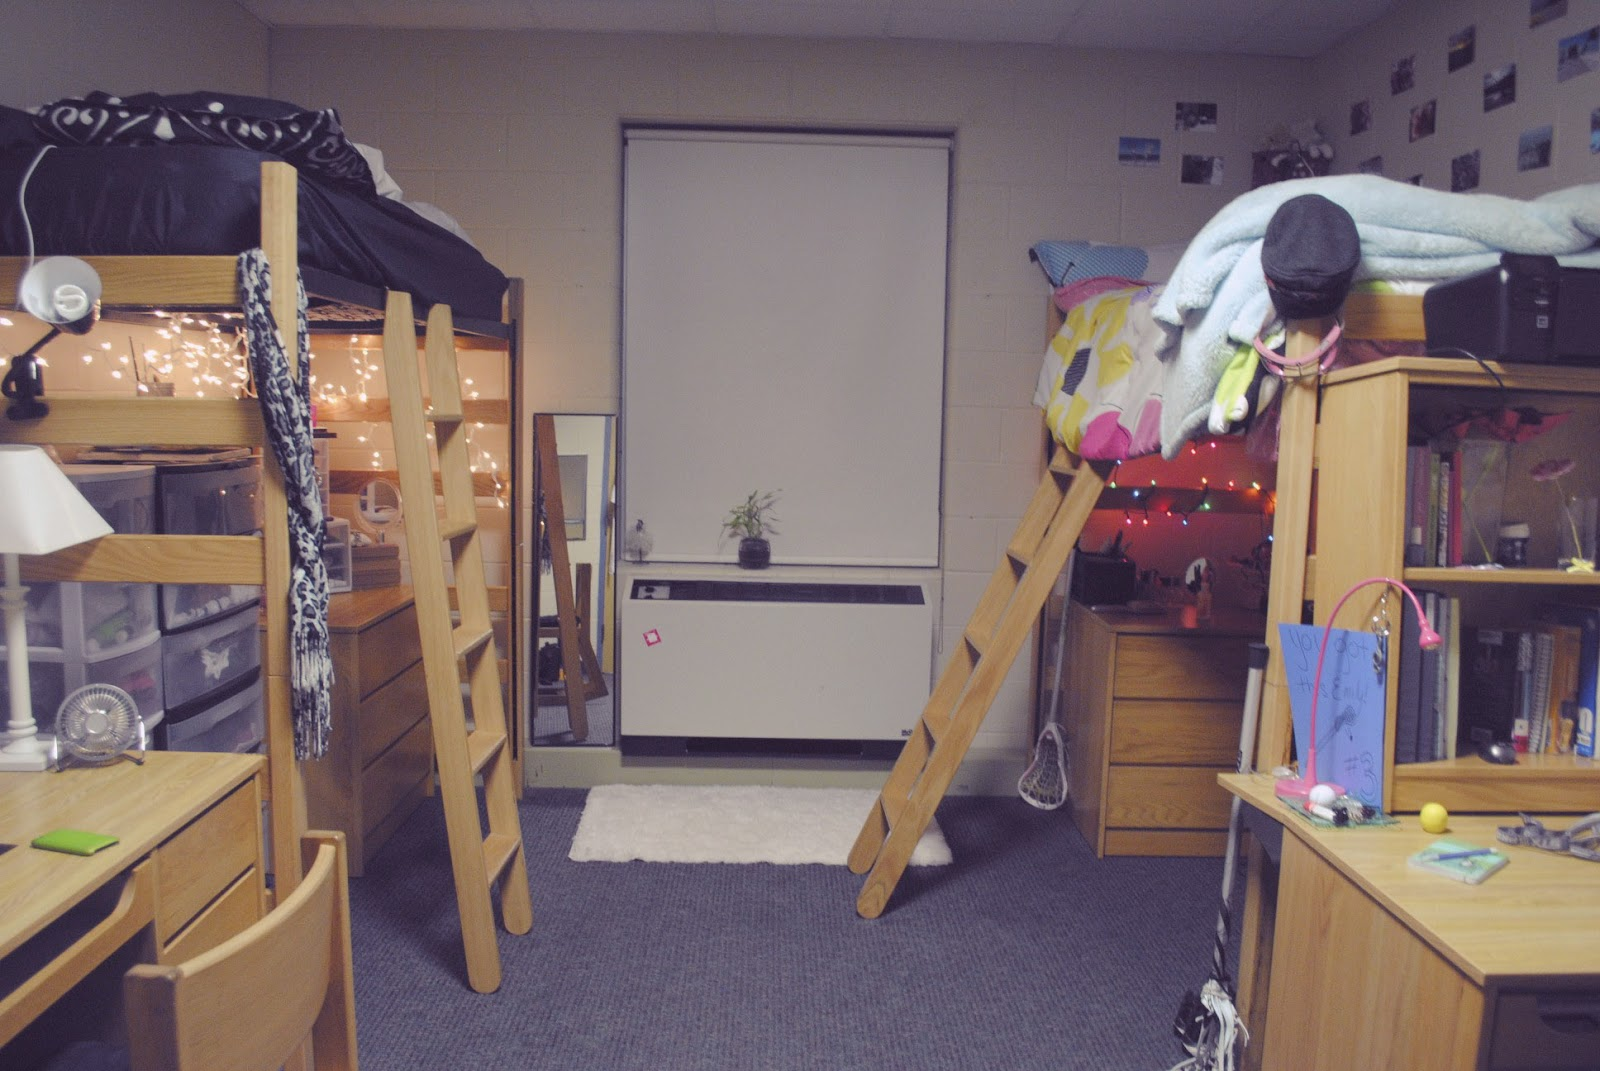 The Belle Diaries: College Dorm Life - Decorations & Ideas